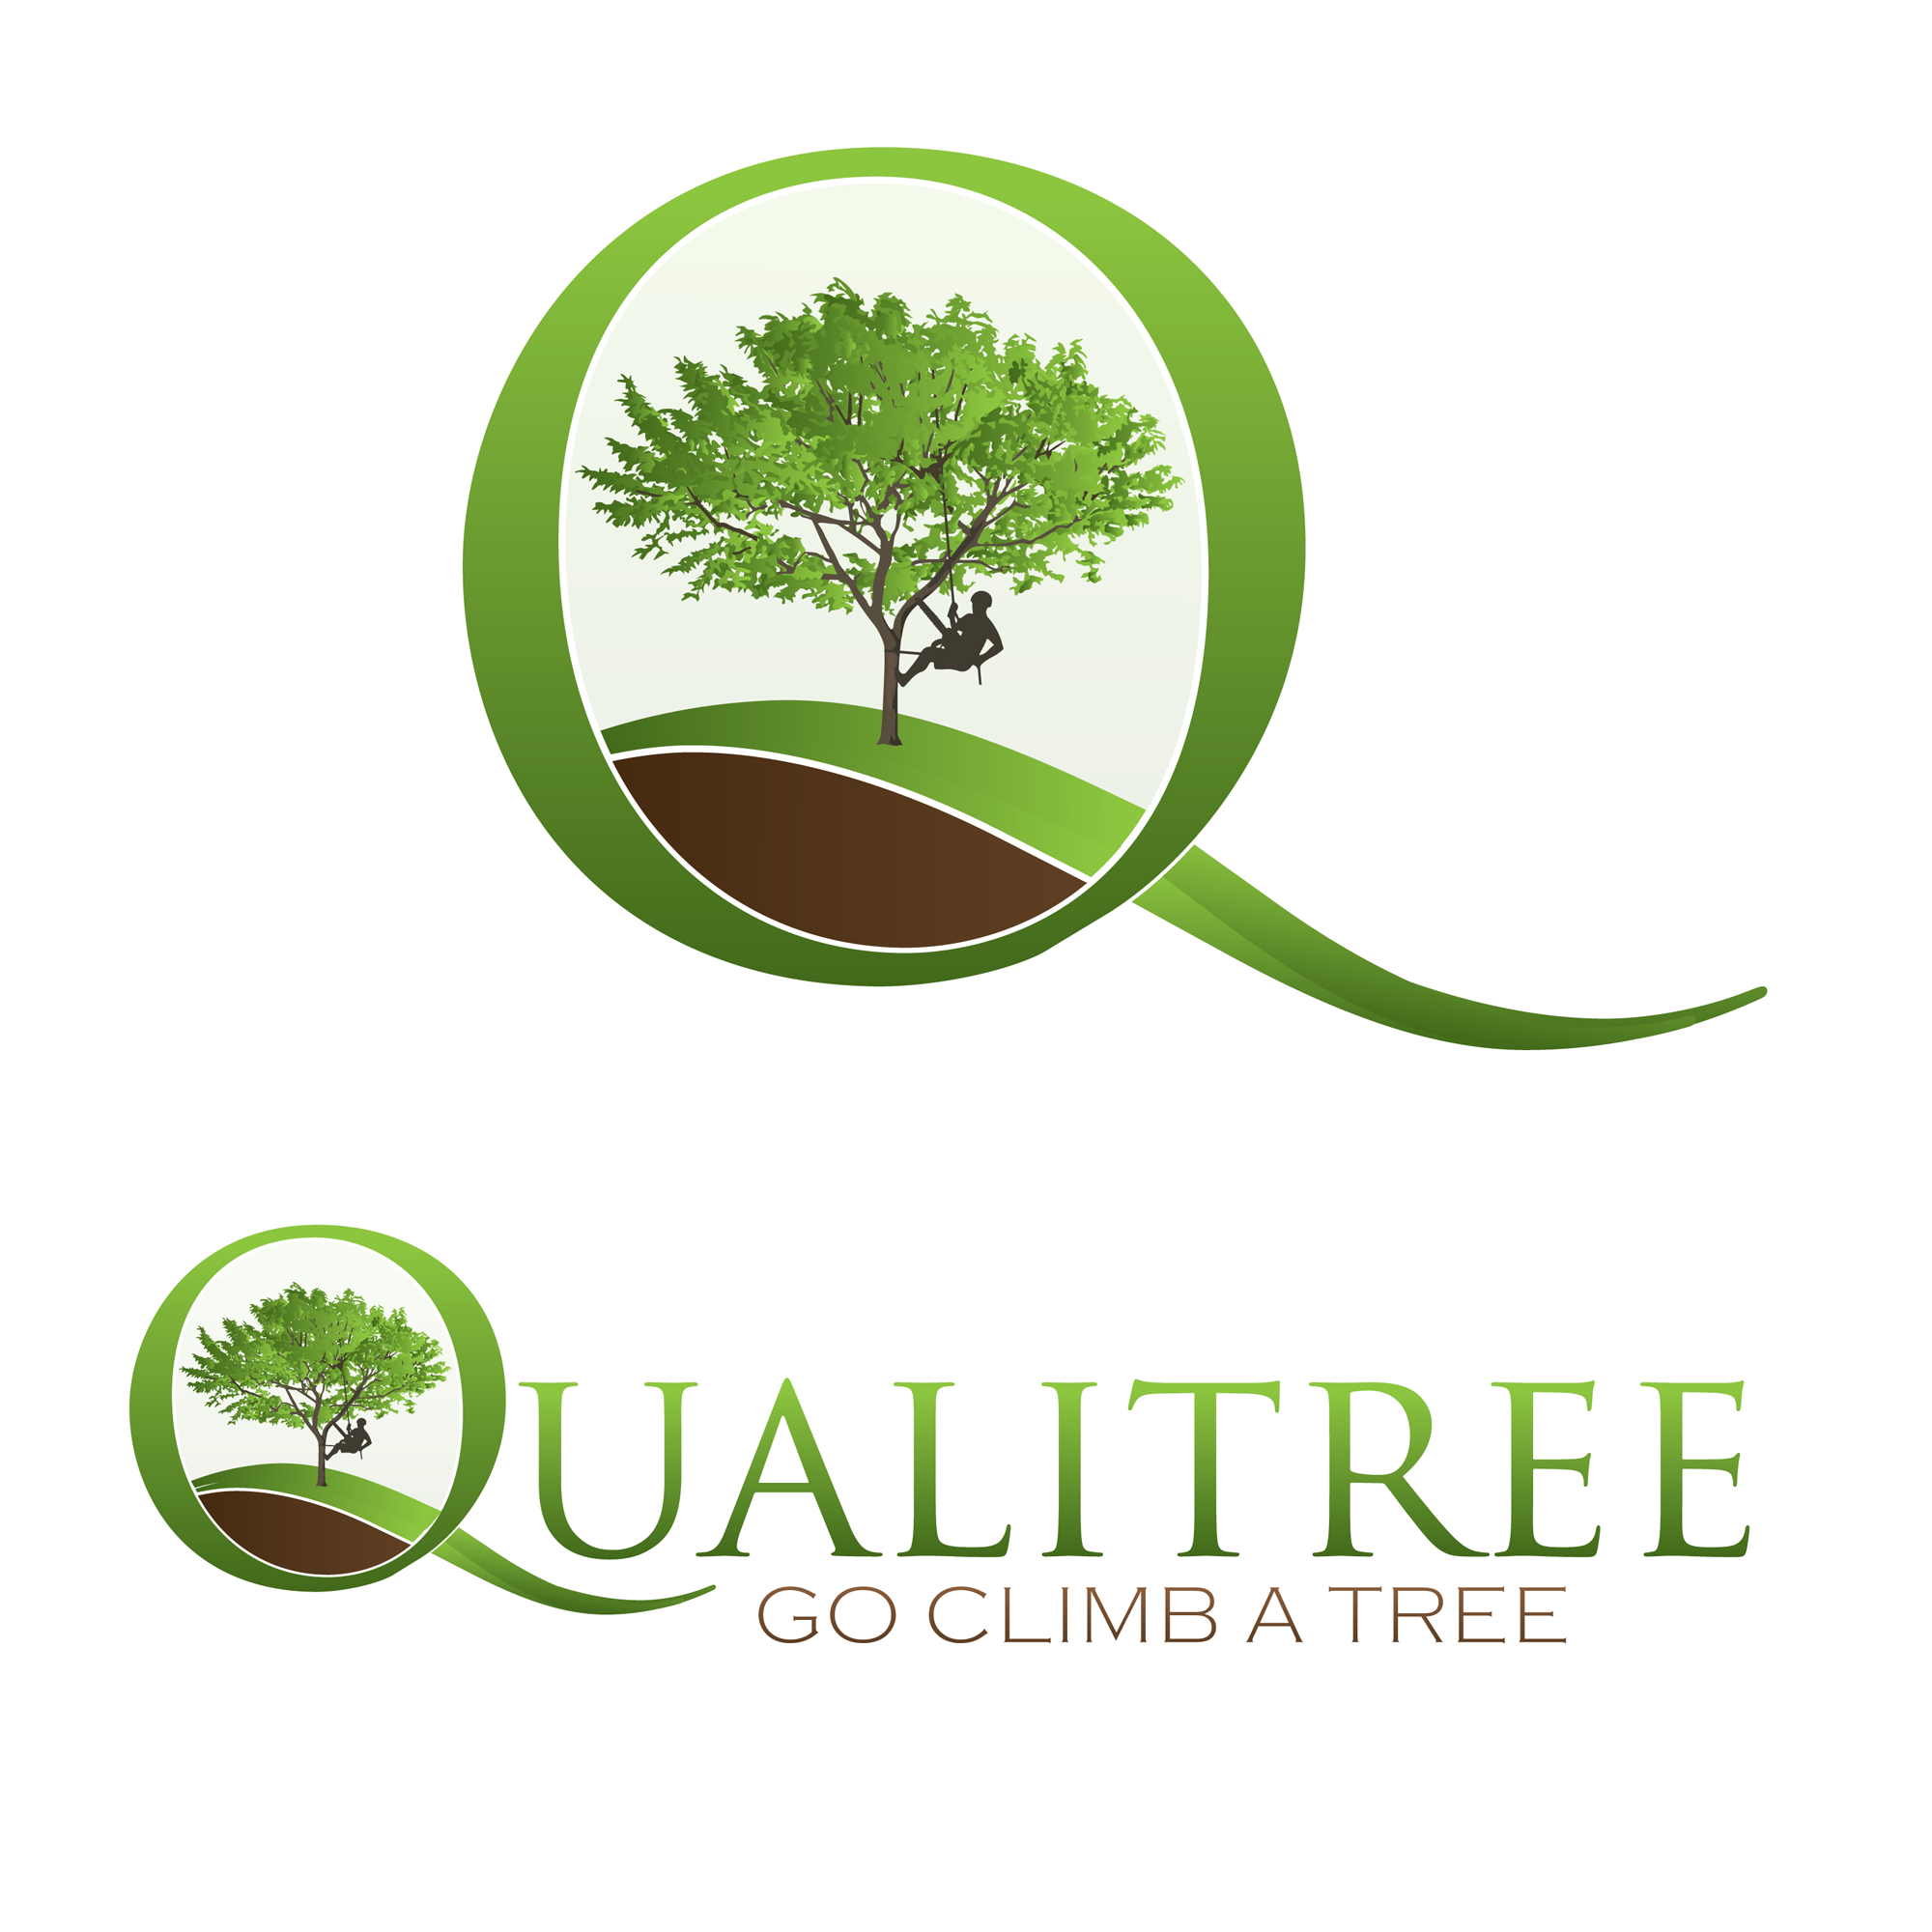 Help Qualitree with a new logo